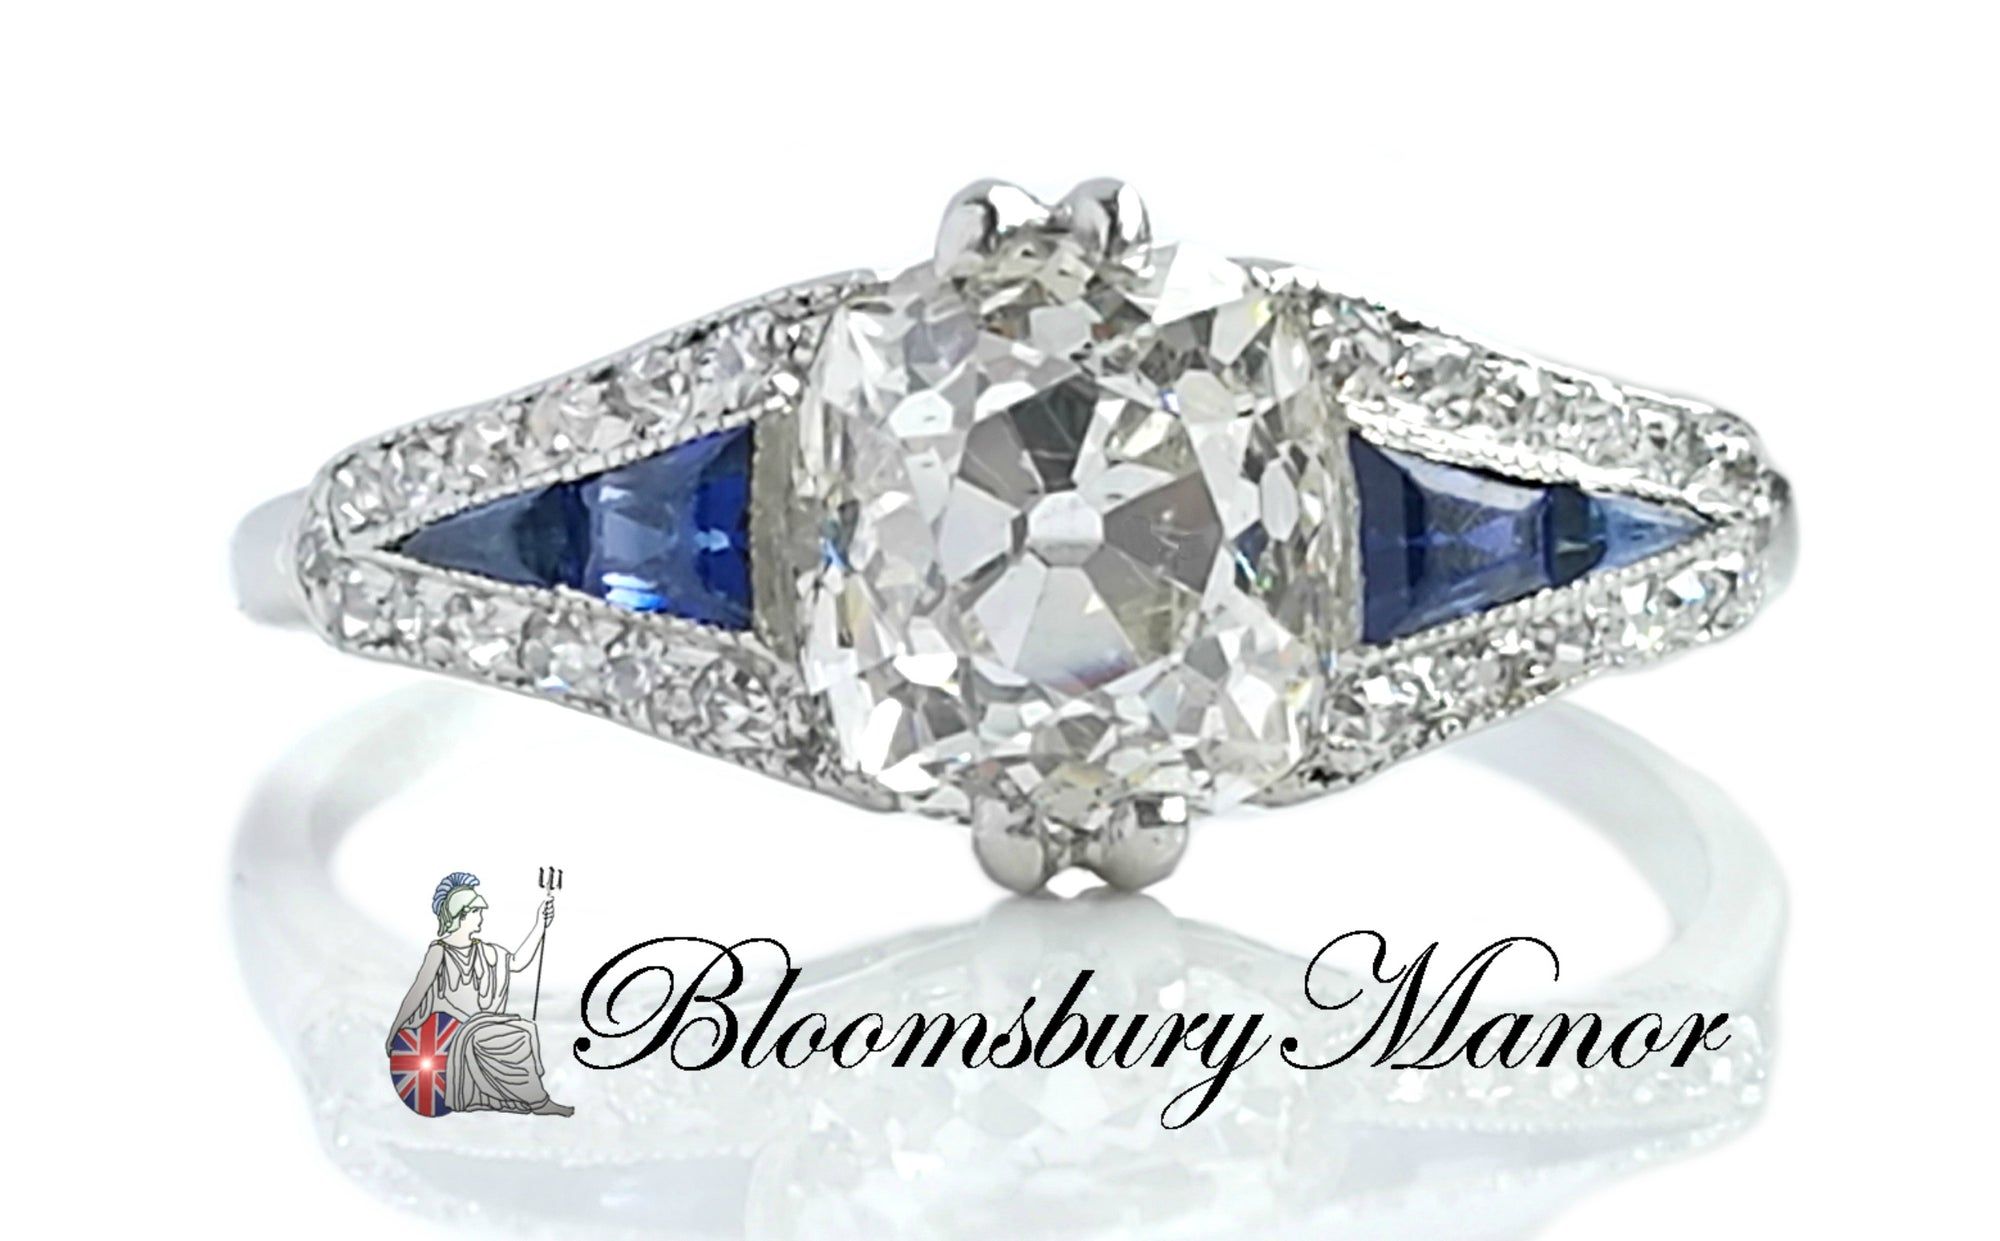 1920s Art Deco 1.60ct Old Cushion Cut Diamond & Sapphire Engagement Ring in Platinum